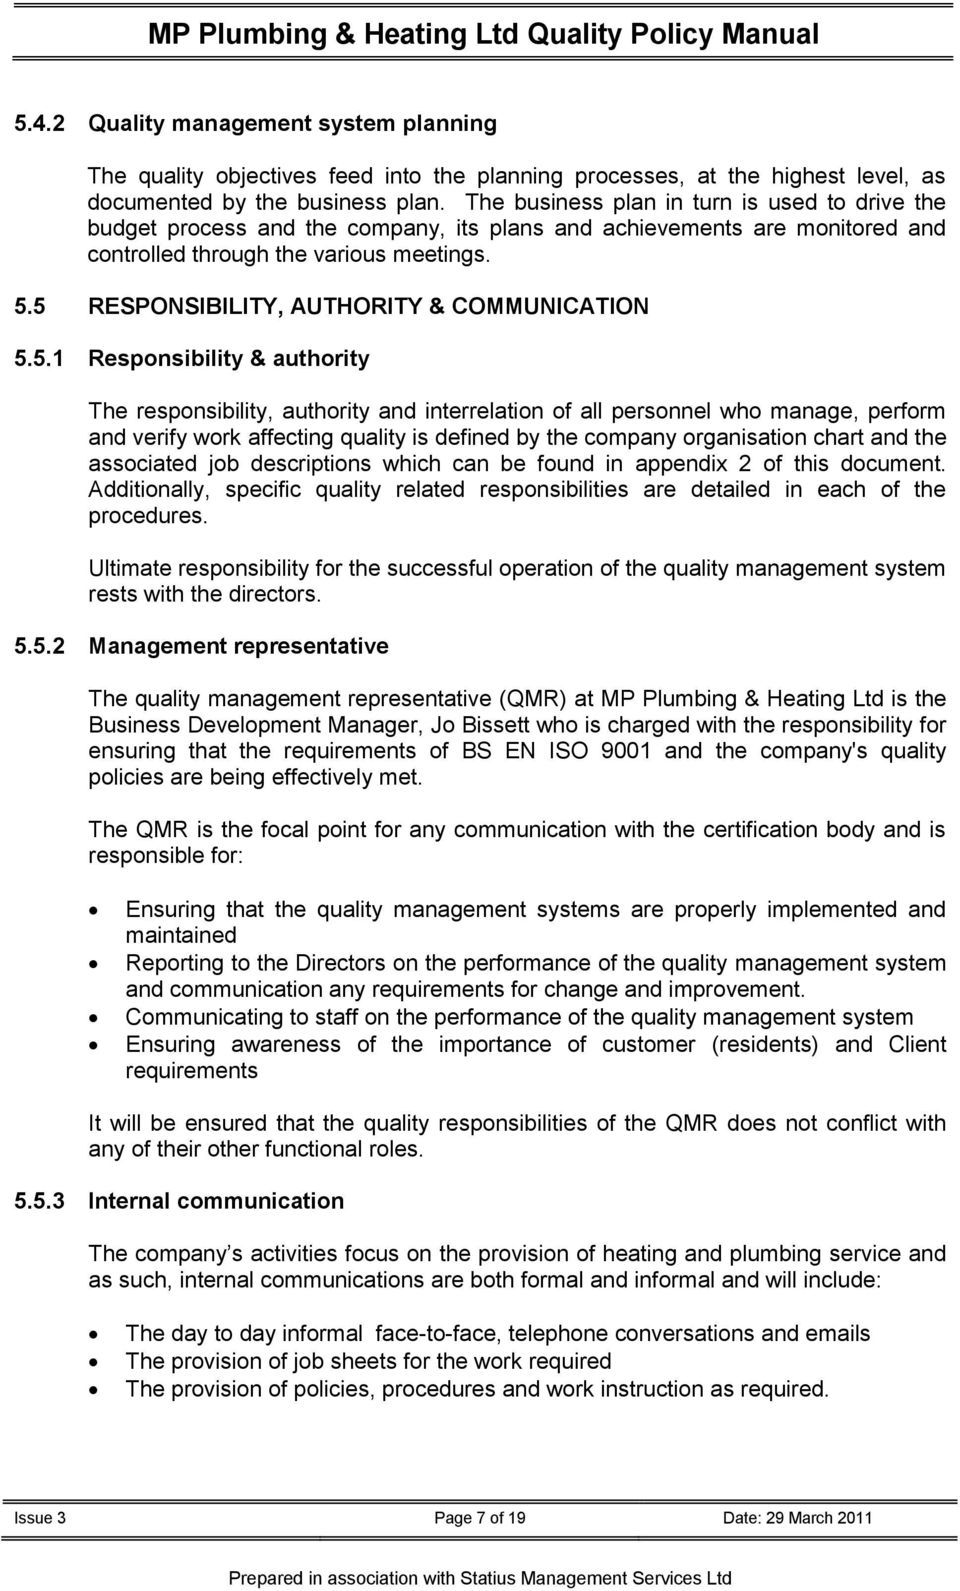 MP Plumbing & Heating Ltd Quality Policy Manual THE QUALITY POLICY ...